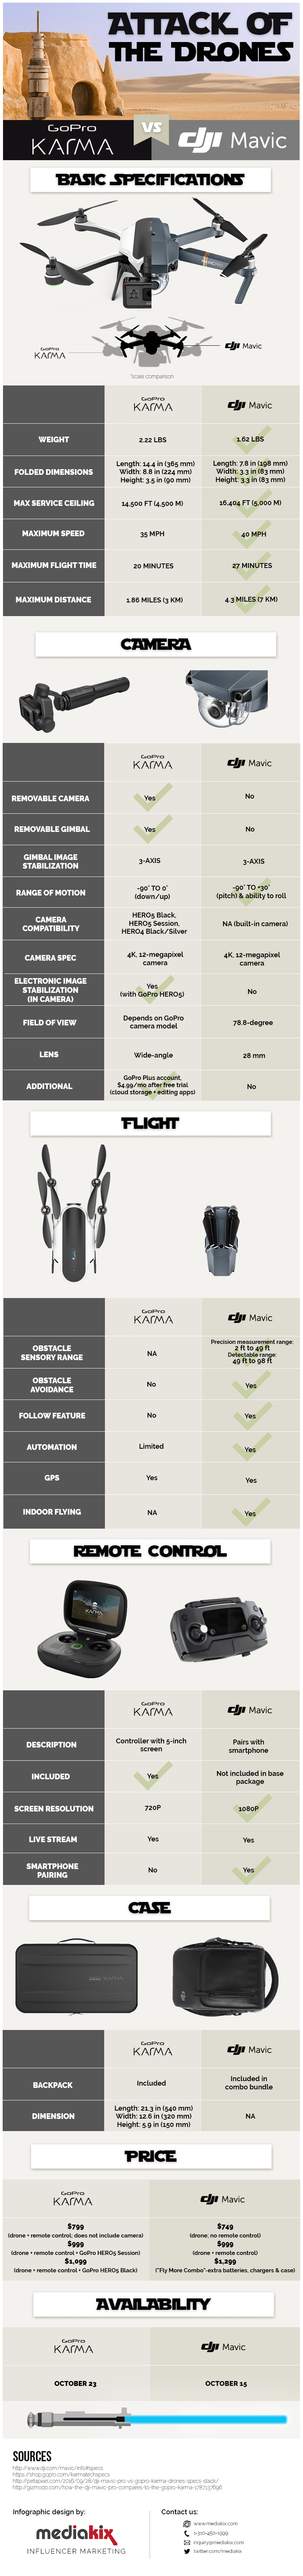 GoPro Karma vs DJI Mavic Pro Comparison Infographic